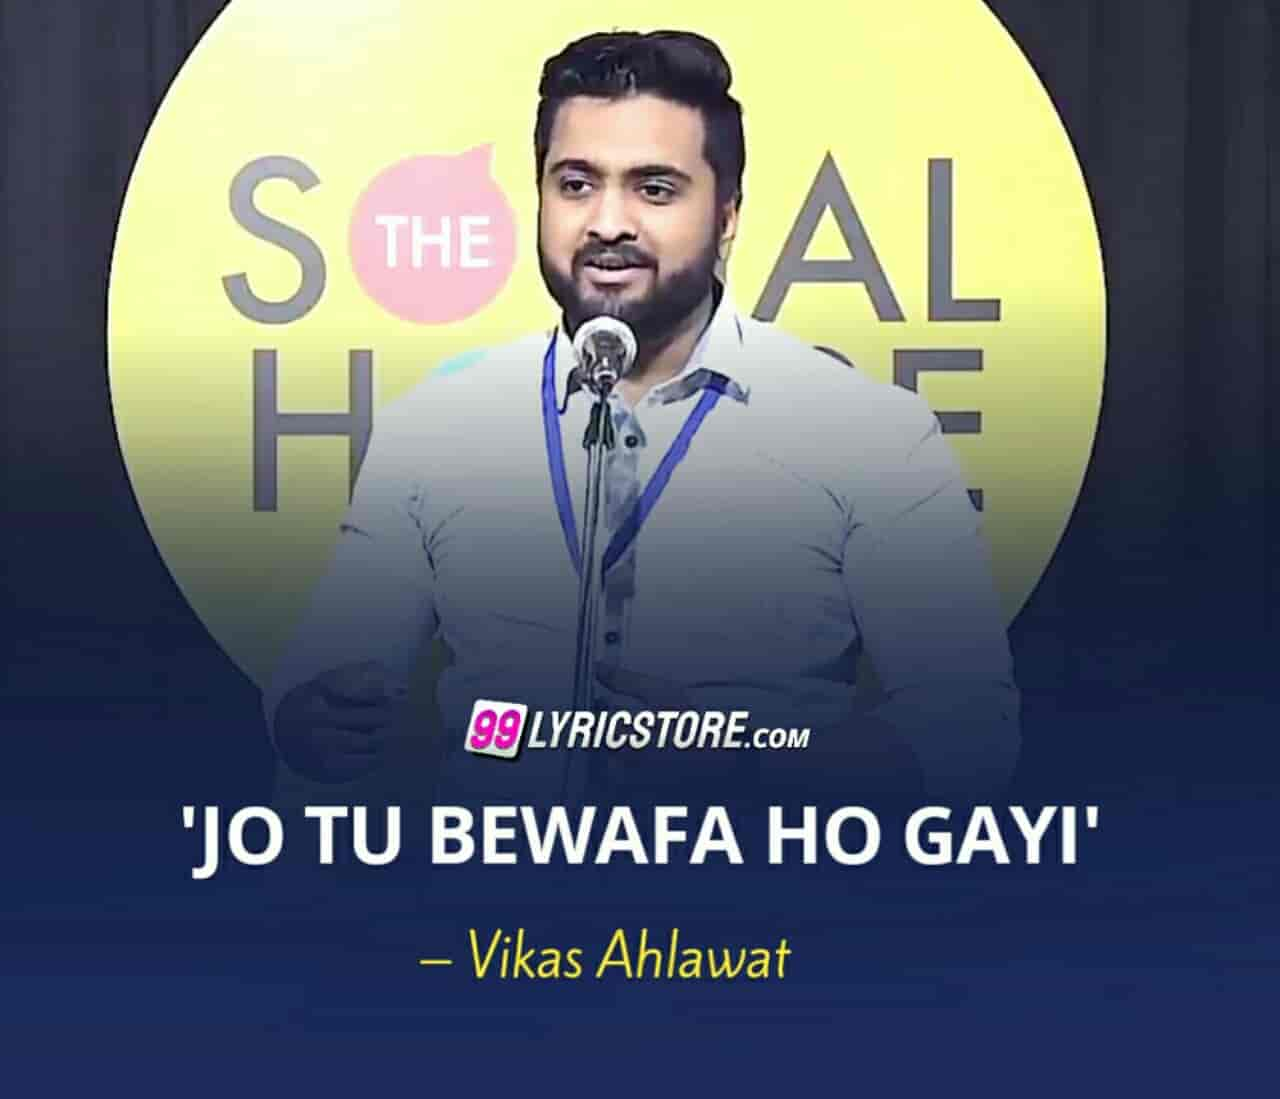 This beautiful Poem 'Jo Tu Bewafa Ho Gayi' has written and performed by Vikas Ahlawat on The Social House's Plateform.